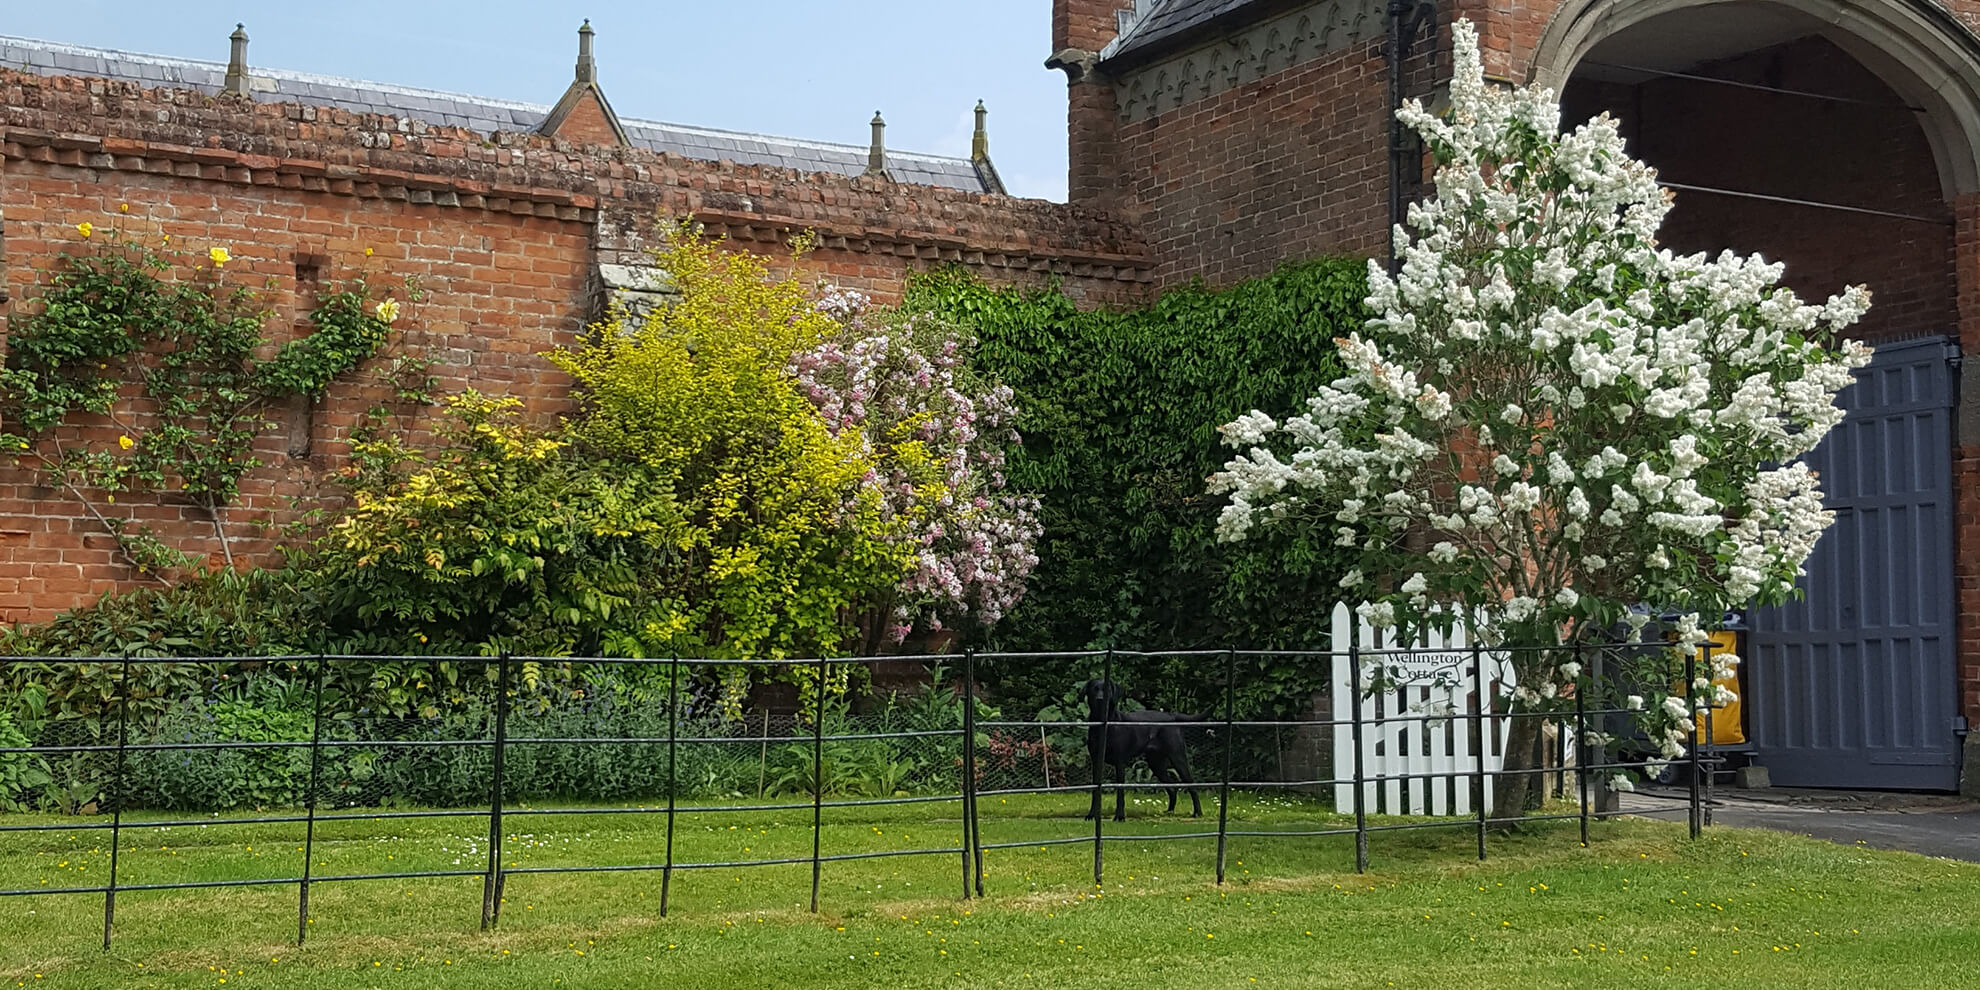 The self-catering cottages at Combermere Abbey are surrounded by greenery and blossoming flowers